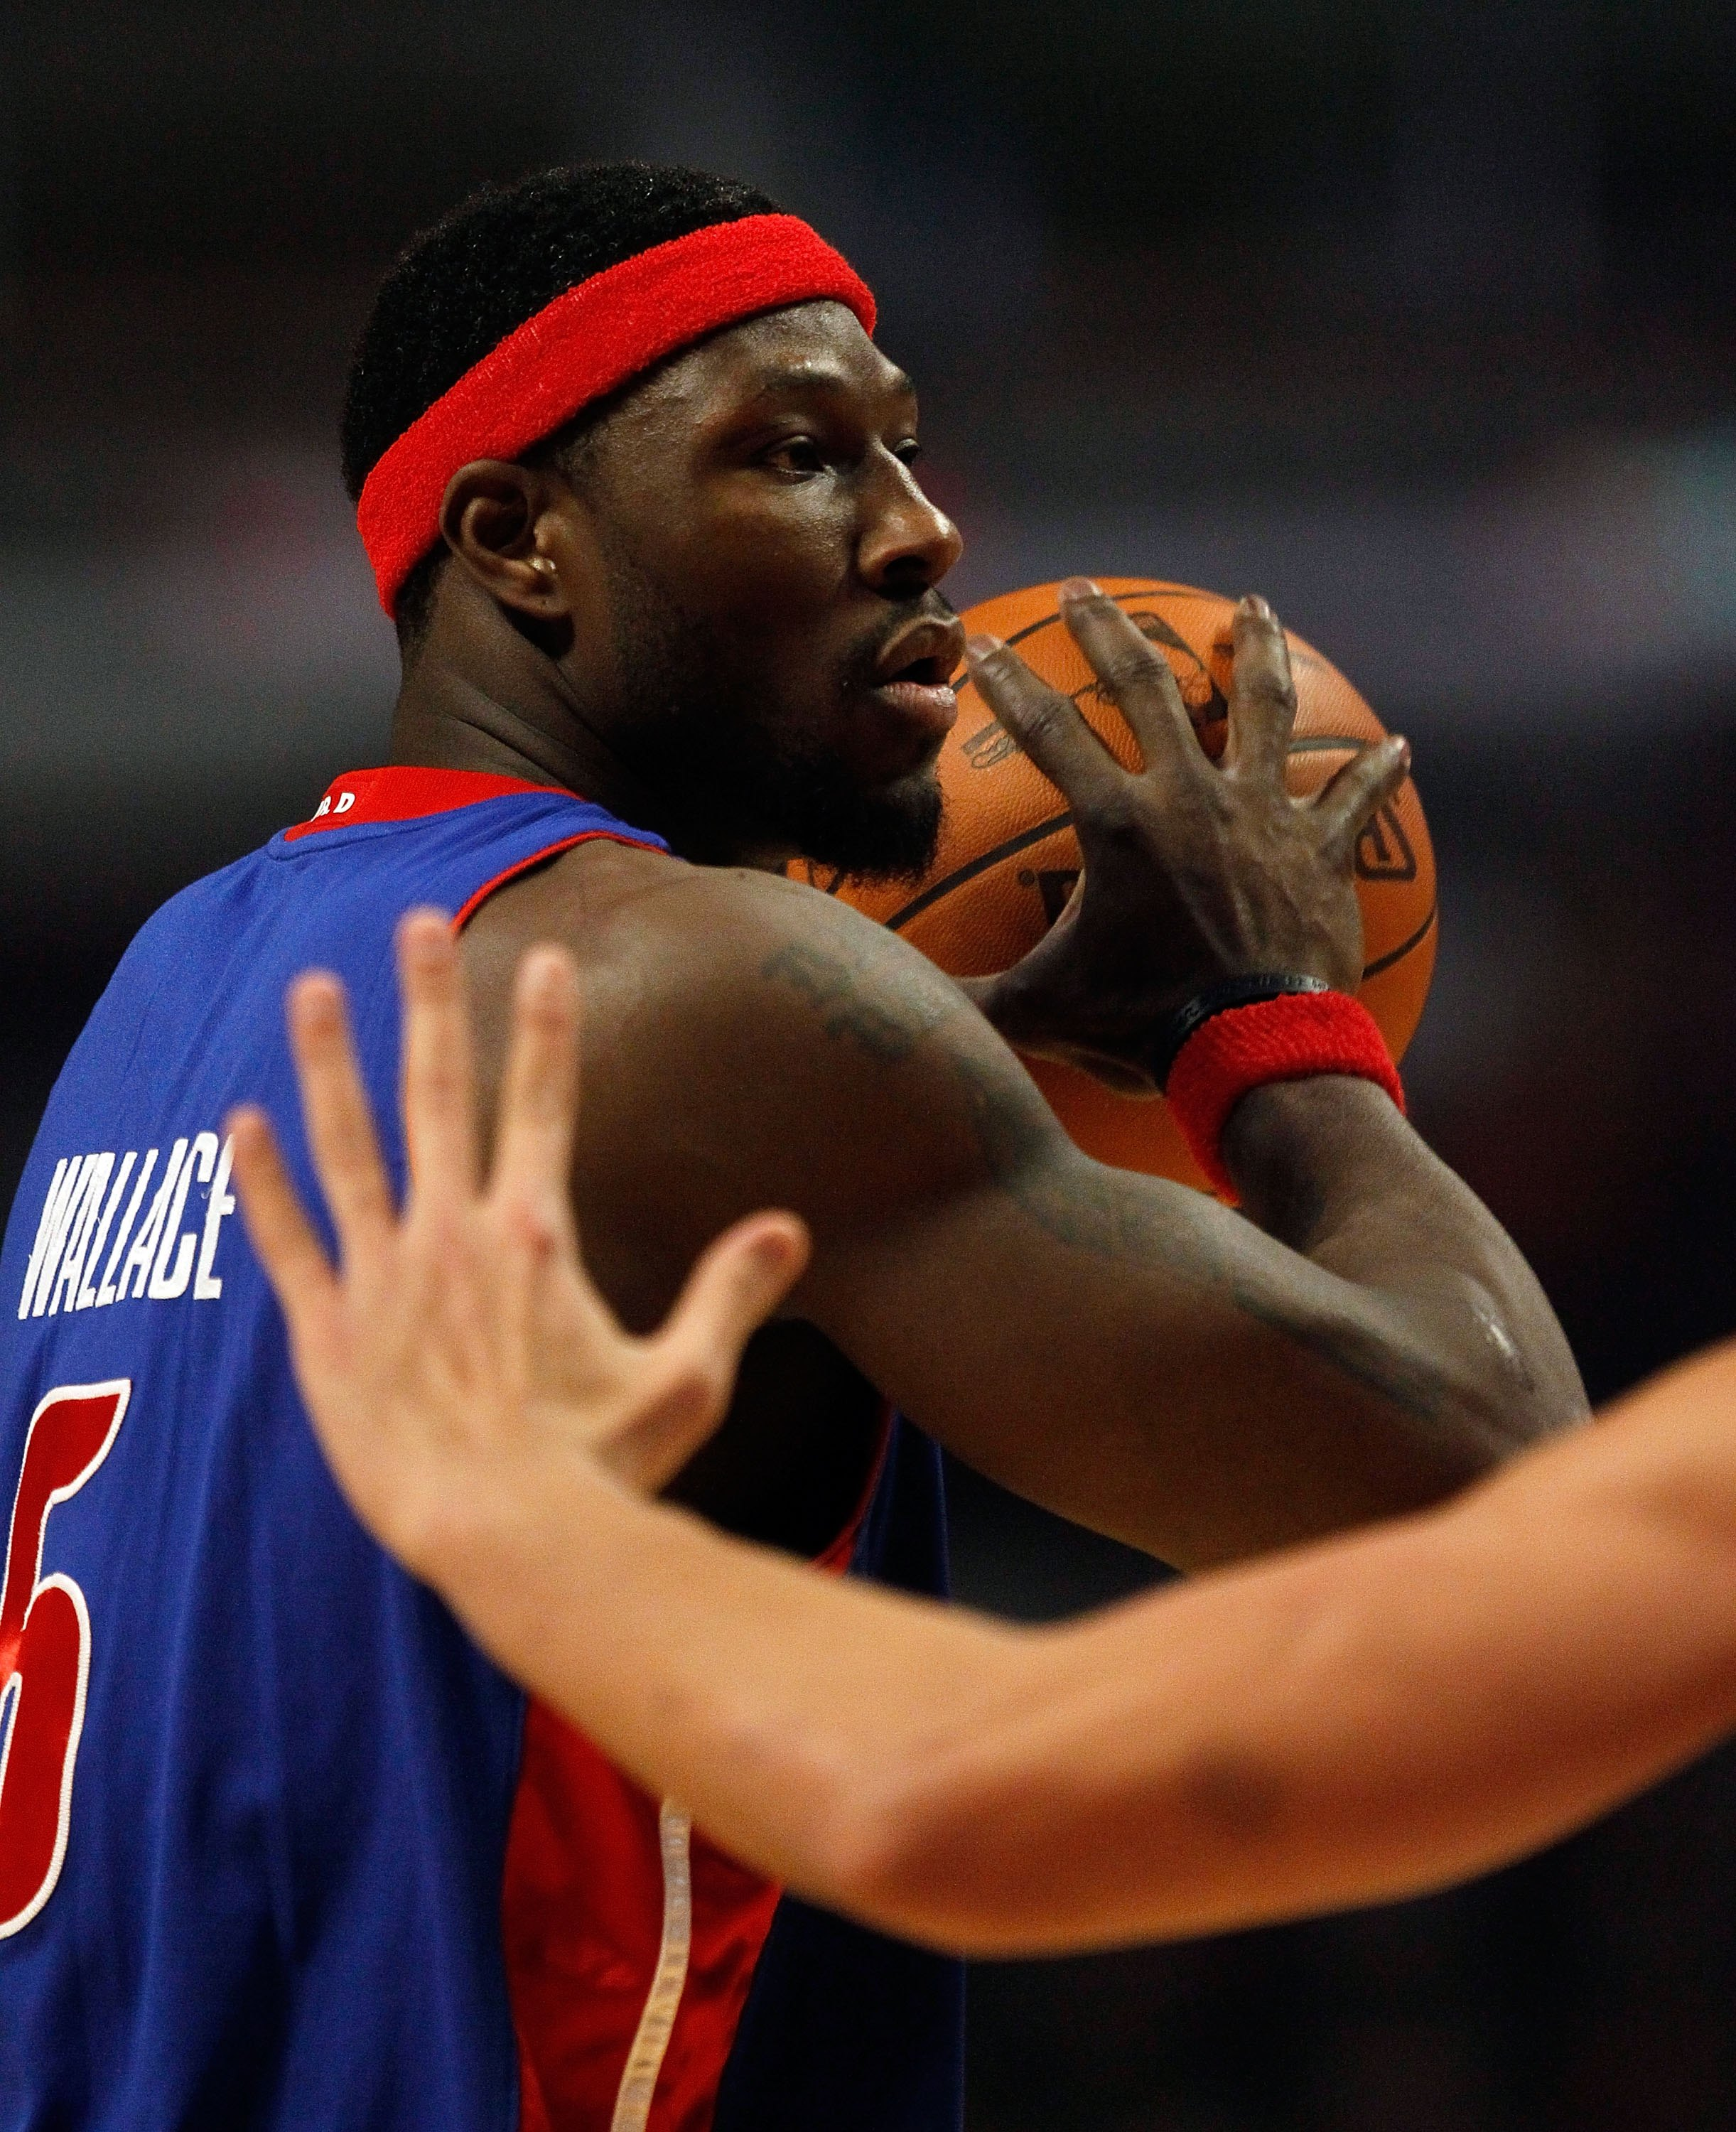 CHICAGO - DECEMBER 02: Ben Wallace #6 of the Detroit Pistons looks to pass against the Chicago Bulls at the United Center on December 2, 2009 in Chicago, Illinois. The Bulls defeated the Pistons 92-85. NOTE TO USER: User expressly acknowledges and agrees